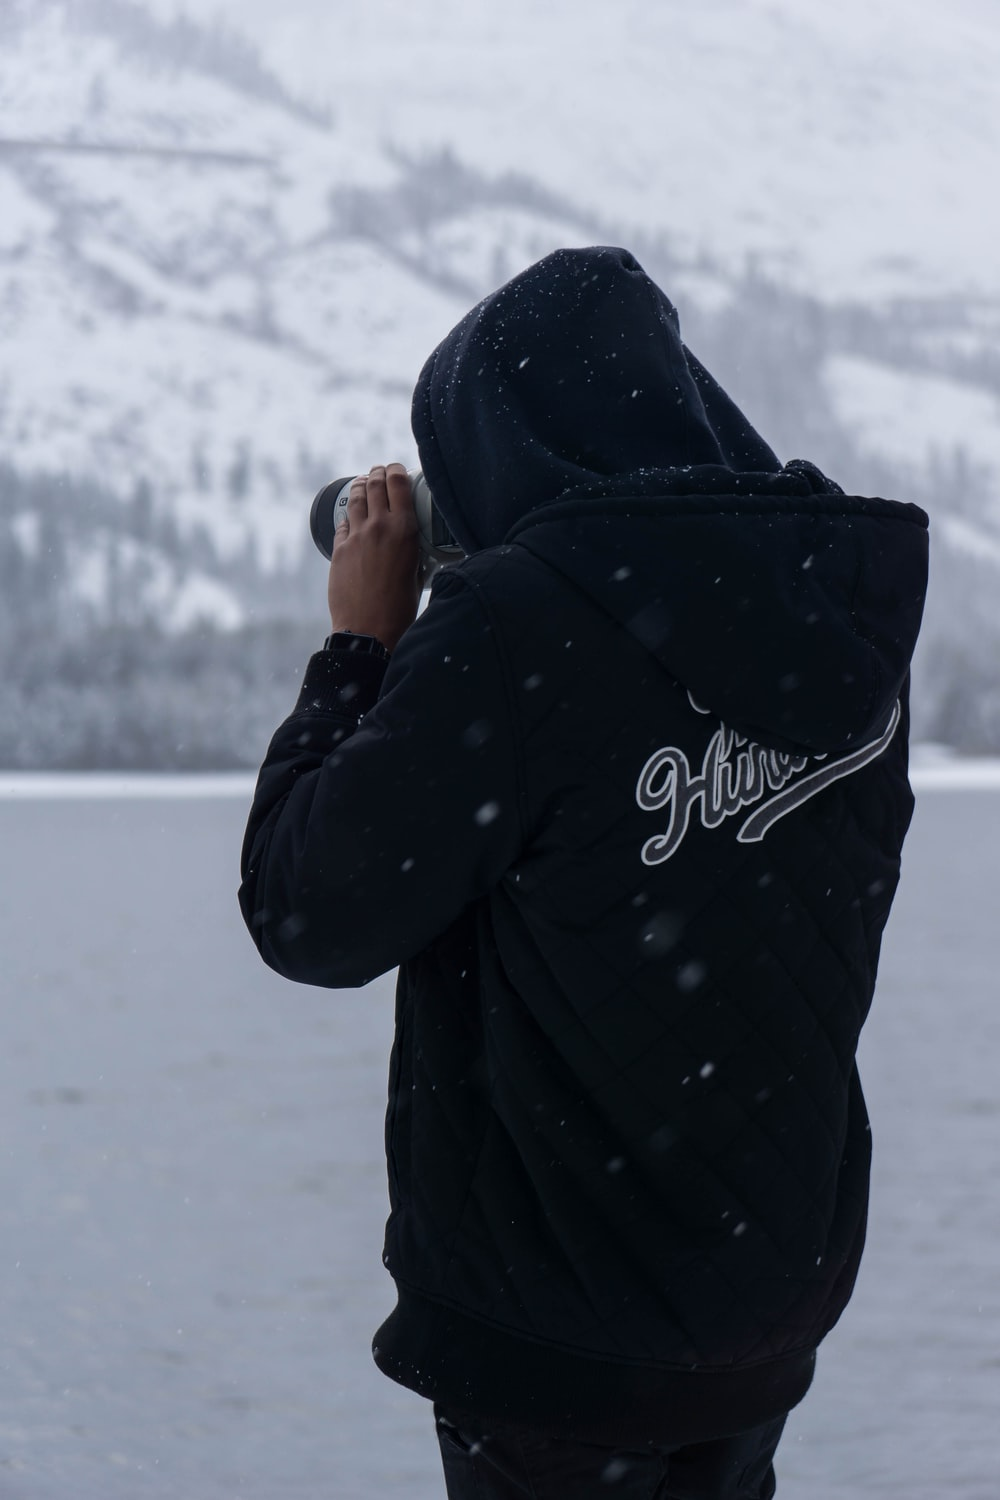 man wears hoodie takes picture during winter